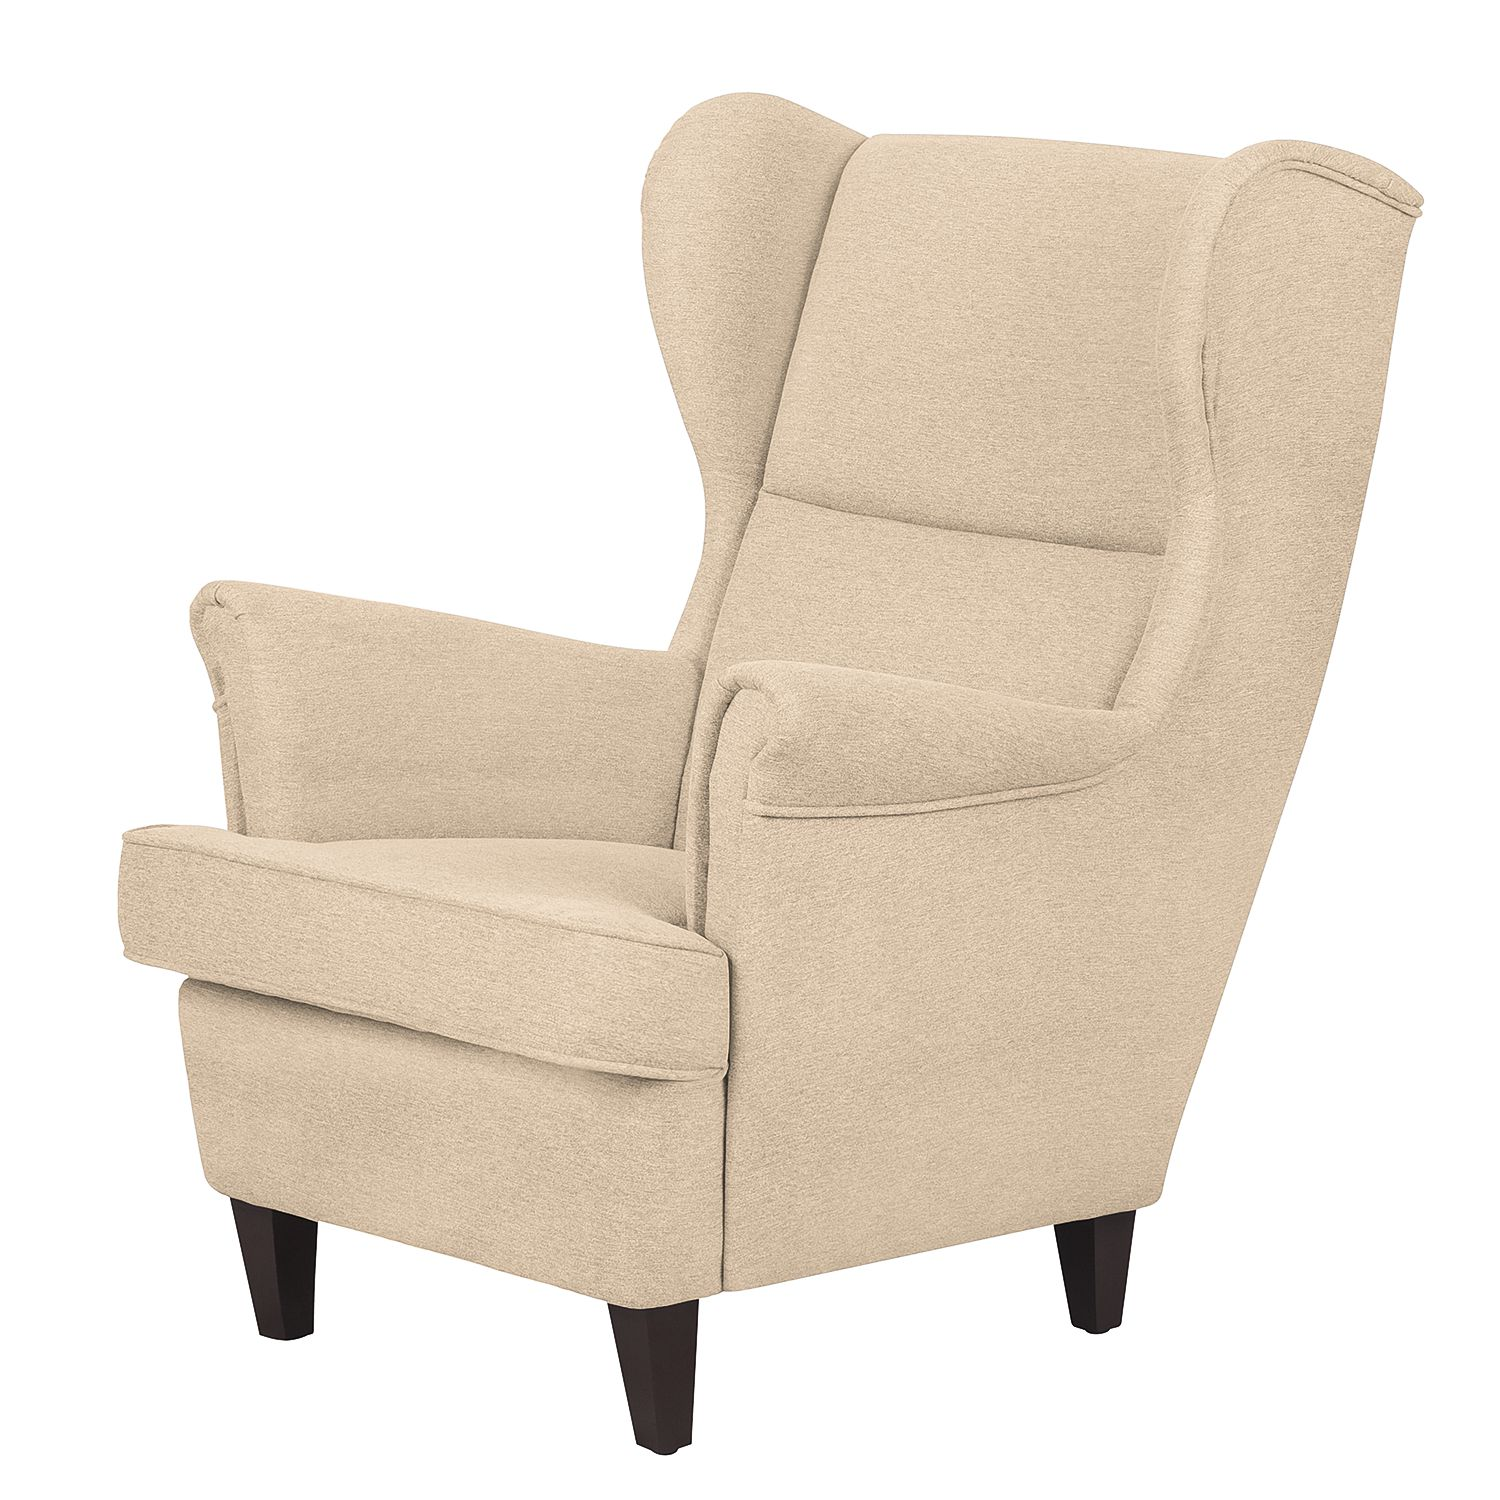 Fauteuil Roma - Tissu - Beige chaud, Jack and Alice